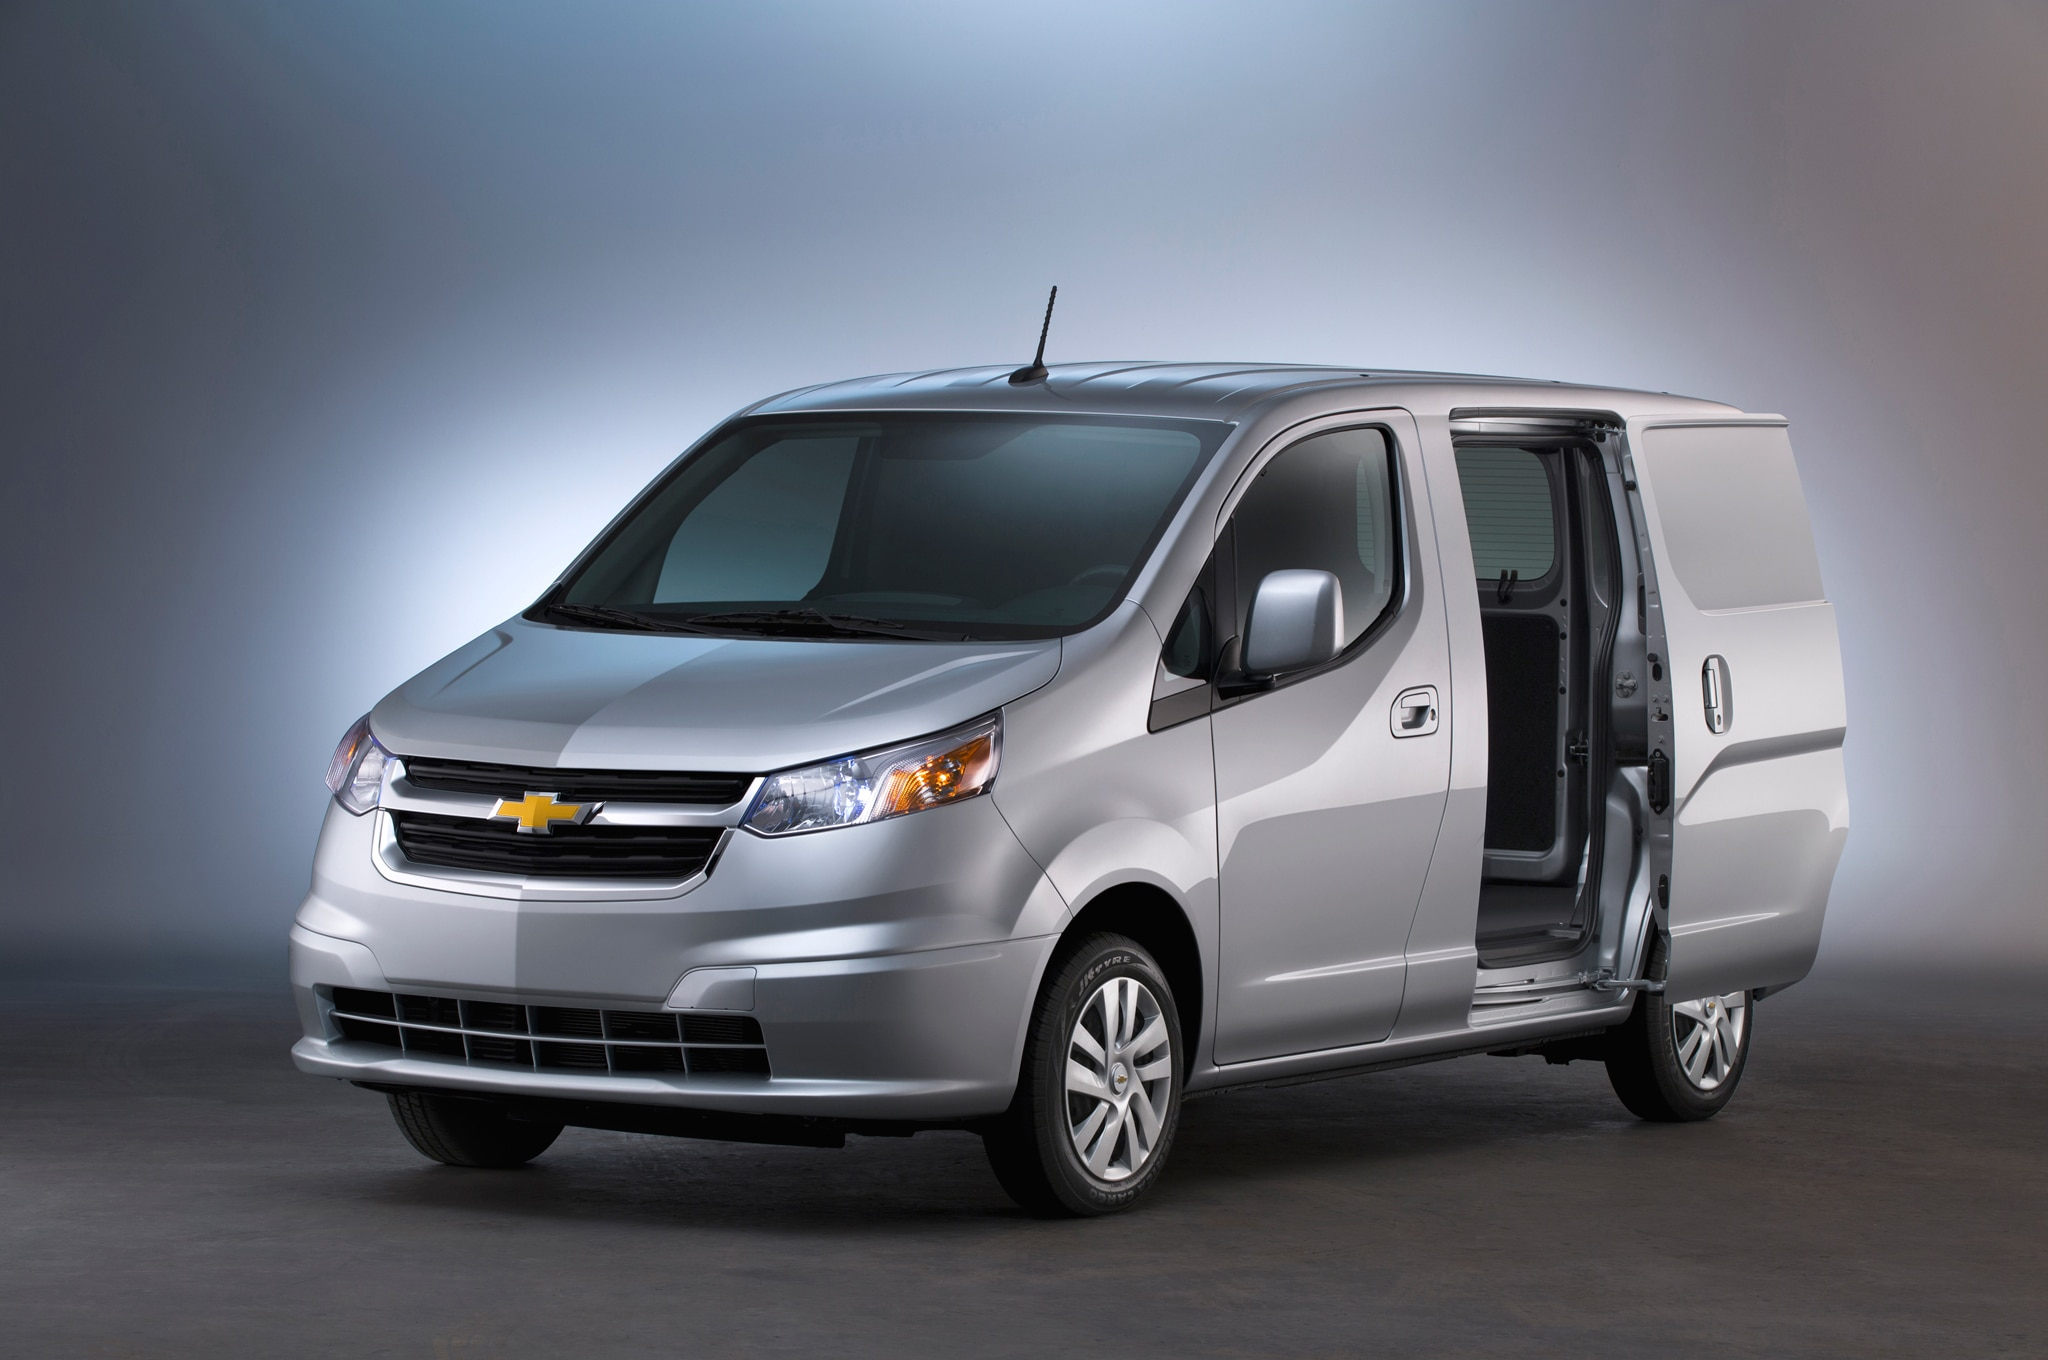 2015 Chevrolet City Express Front Three Quarter 02